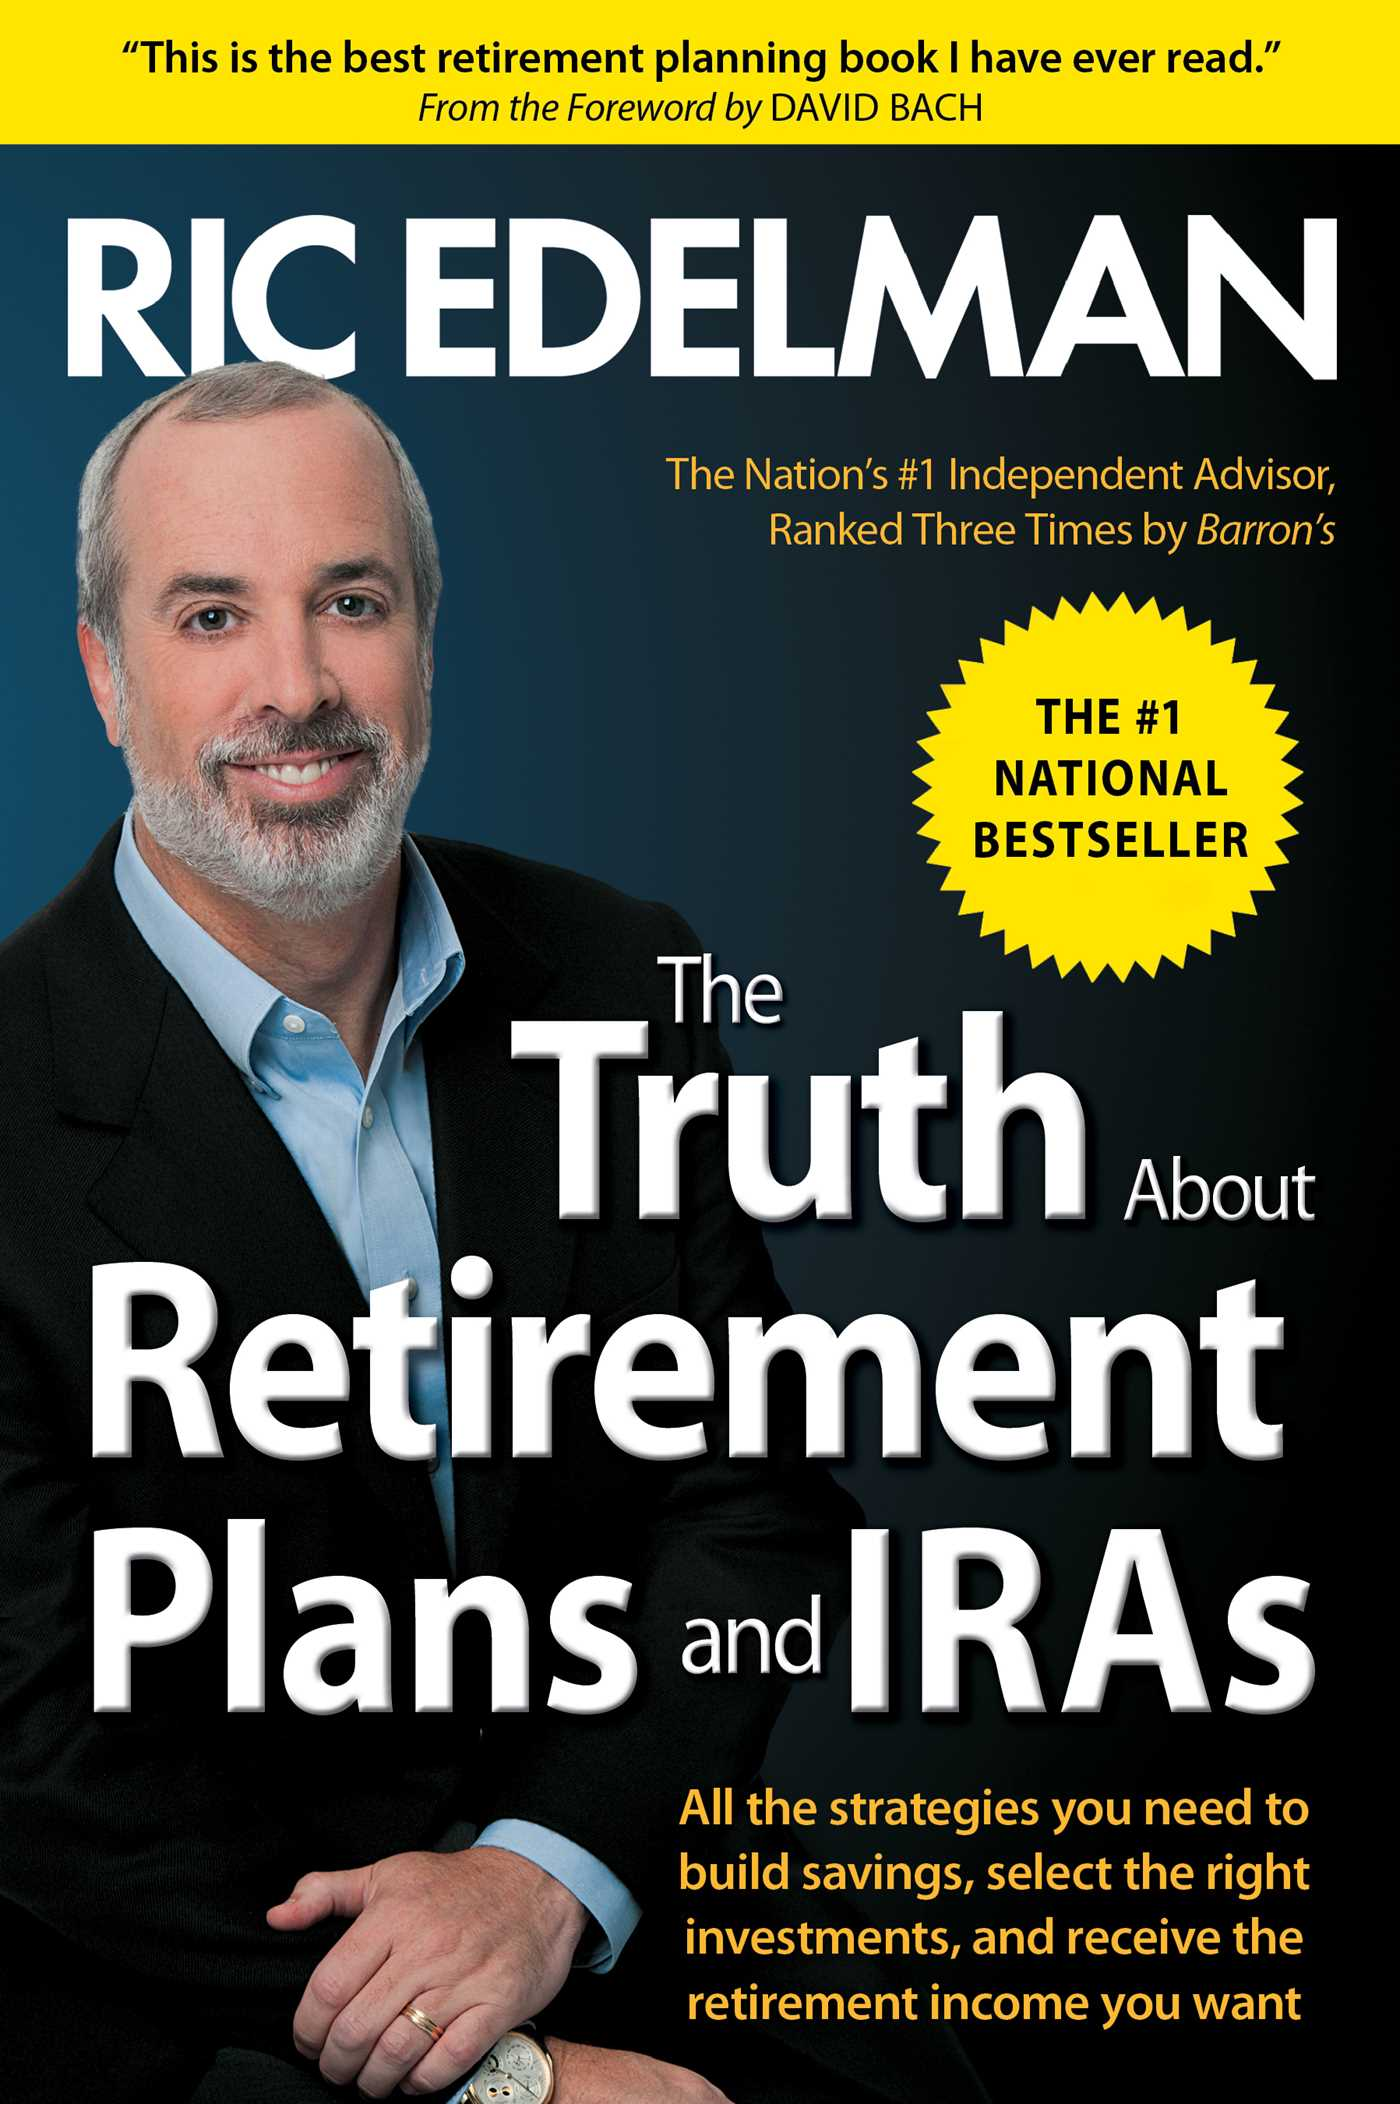 The-truth-about-retirement-plans-and-iras-9781476739854_hr